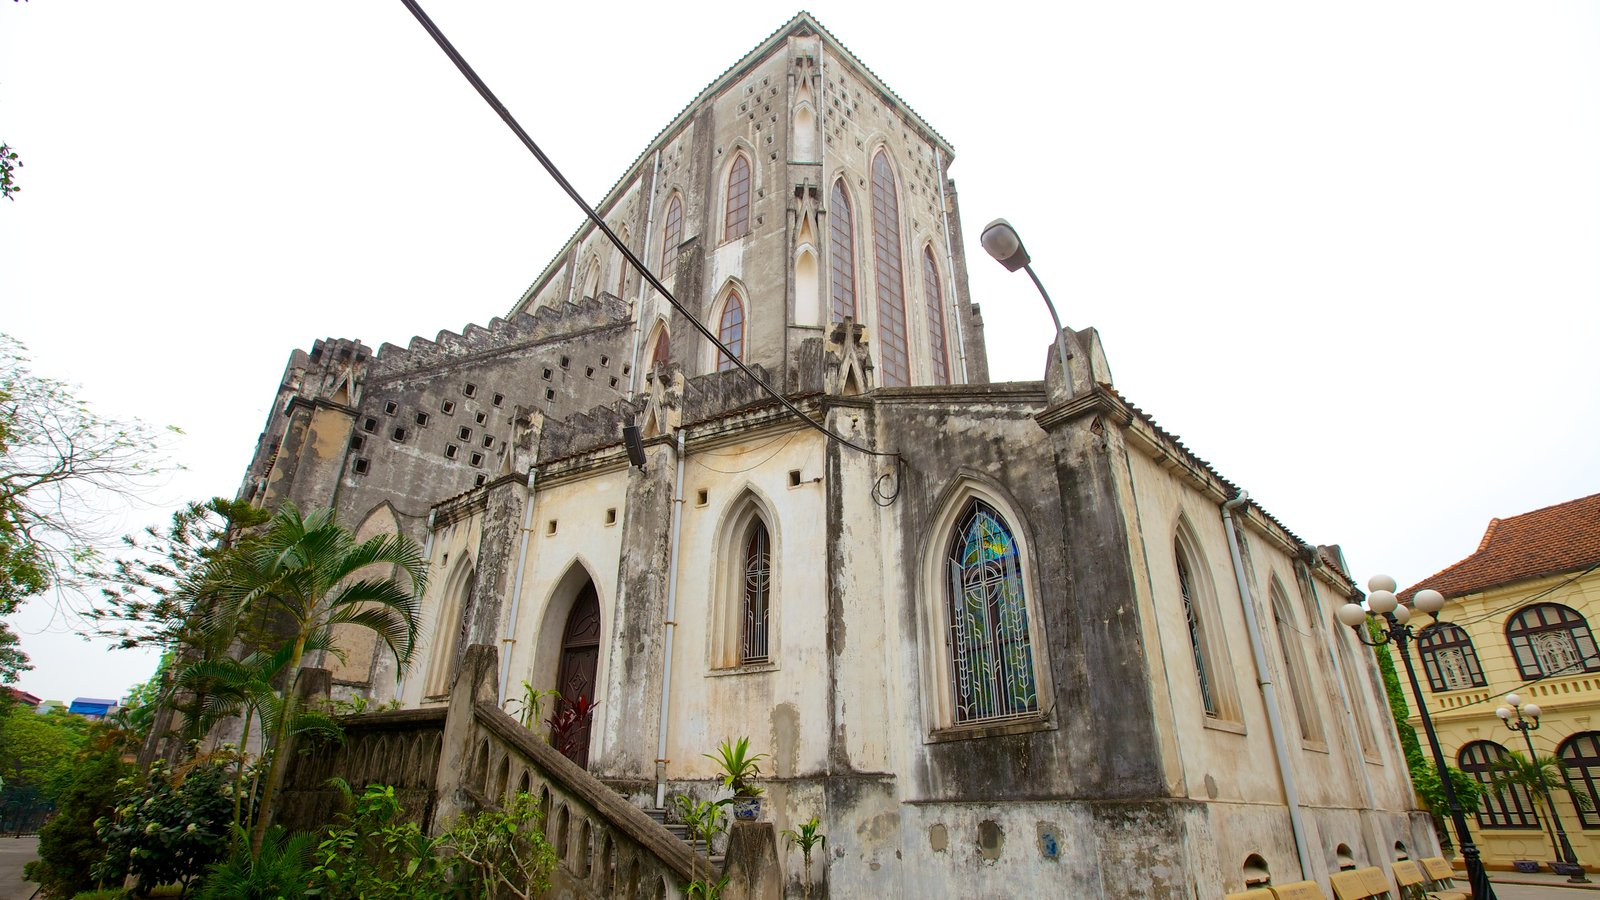 St. Joseph Cathedral featuring heritage architecture, religious elements and a church or cathedral